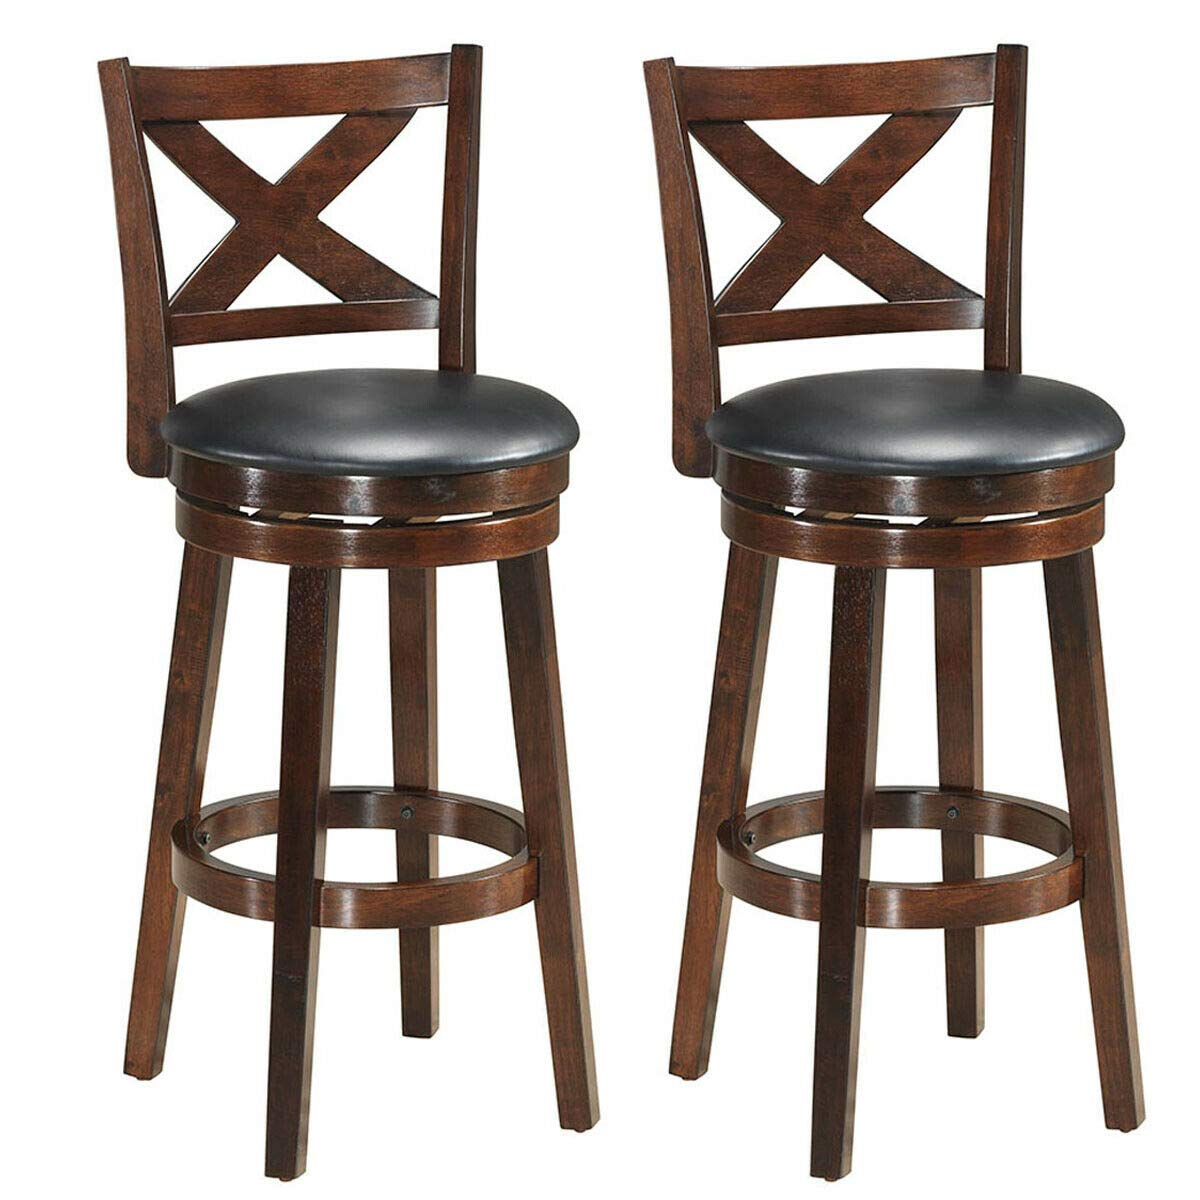 COSTWAY Bar Stools Set of 2, Counter Height Dining Chair, Fabric Upholstered 360 Degree Swivel, PVC Cushioned Seat, Perfect for Dining and Living Room by COSTWAY